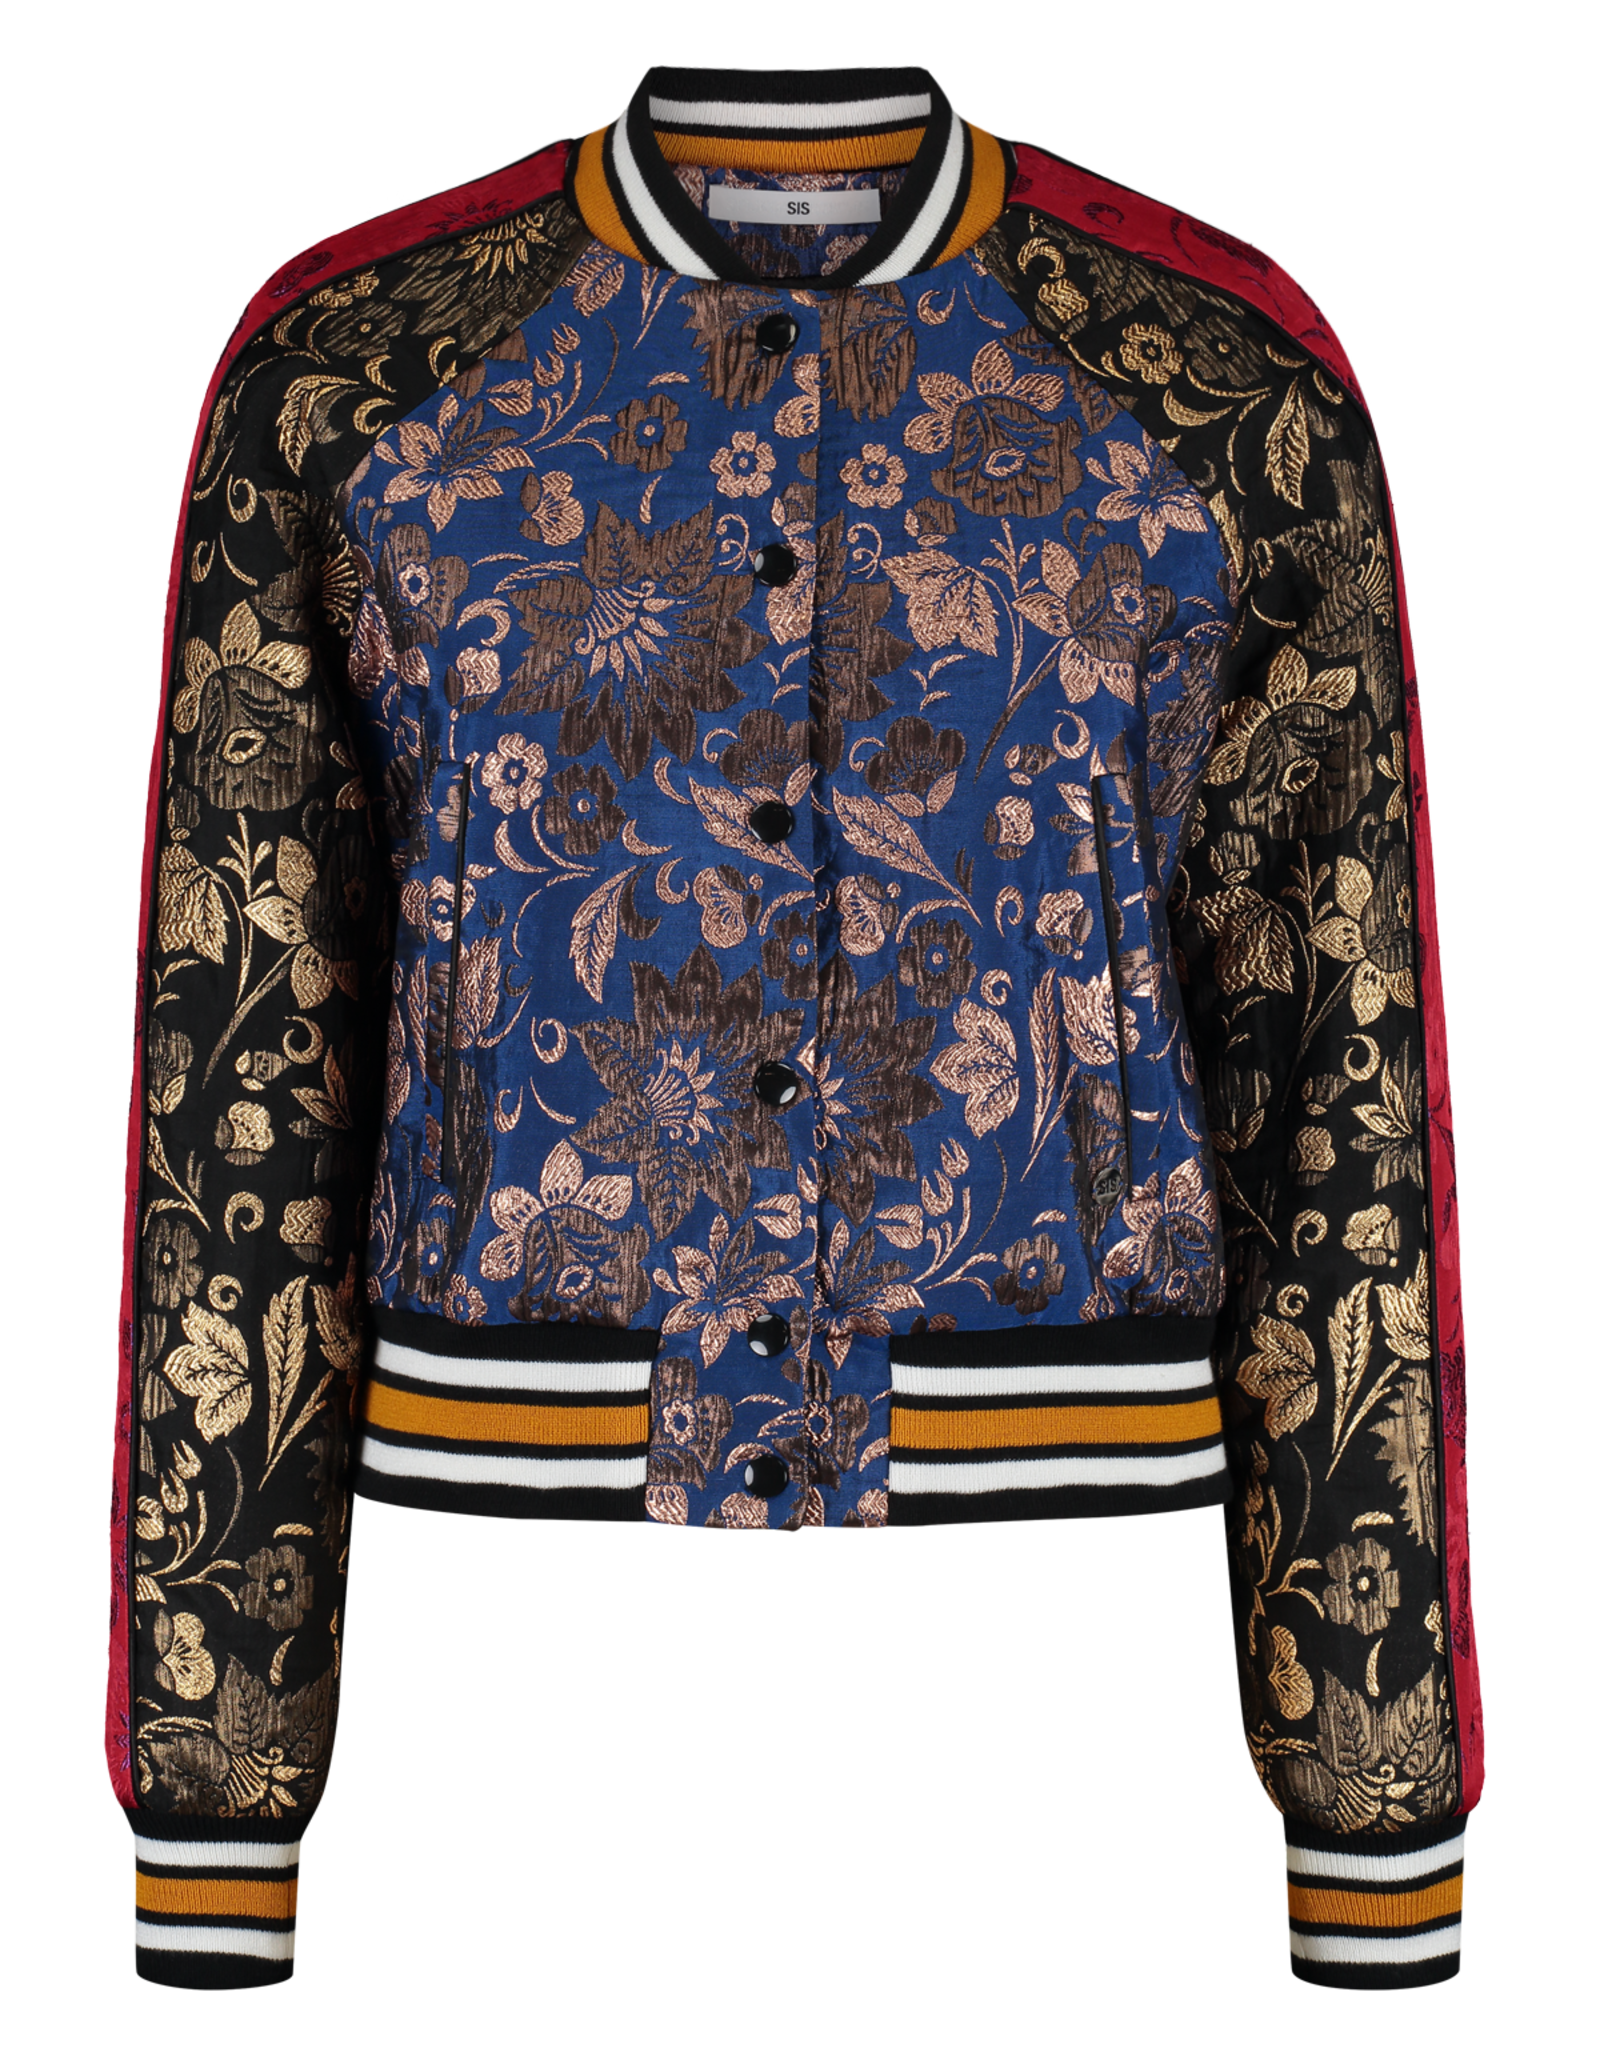 SS18-405 College Jacket